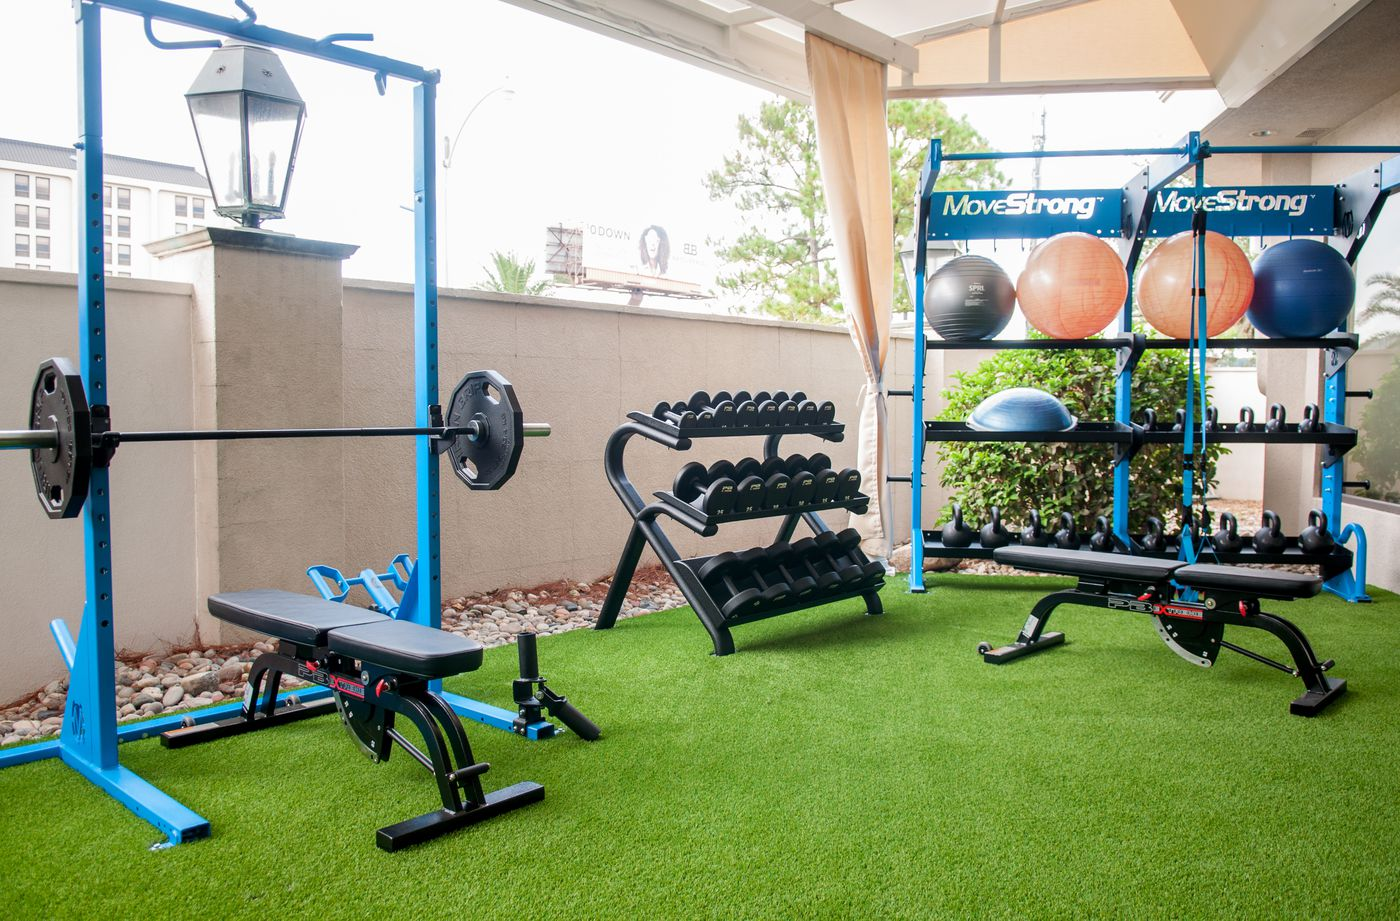 MoveStrong Outdoor Gym With Freights